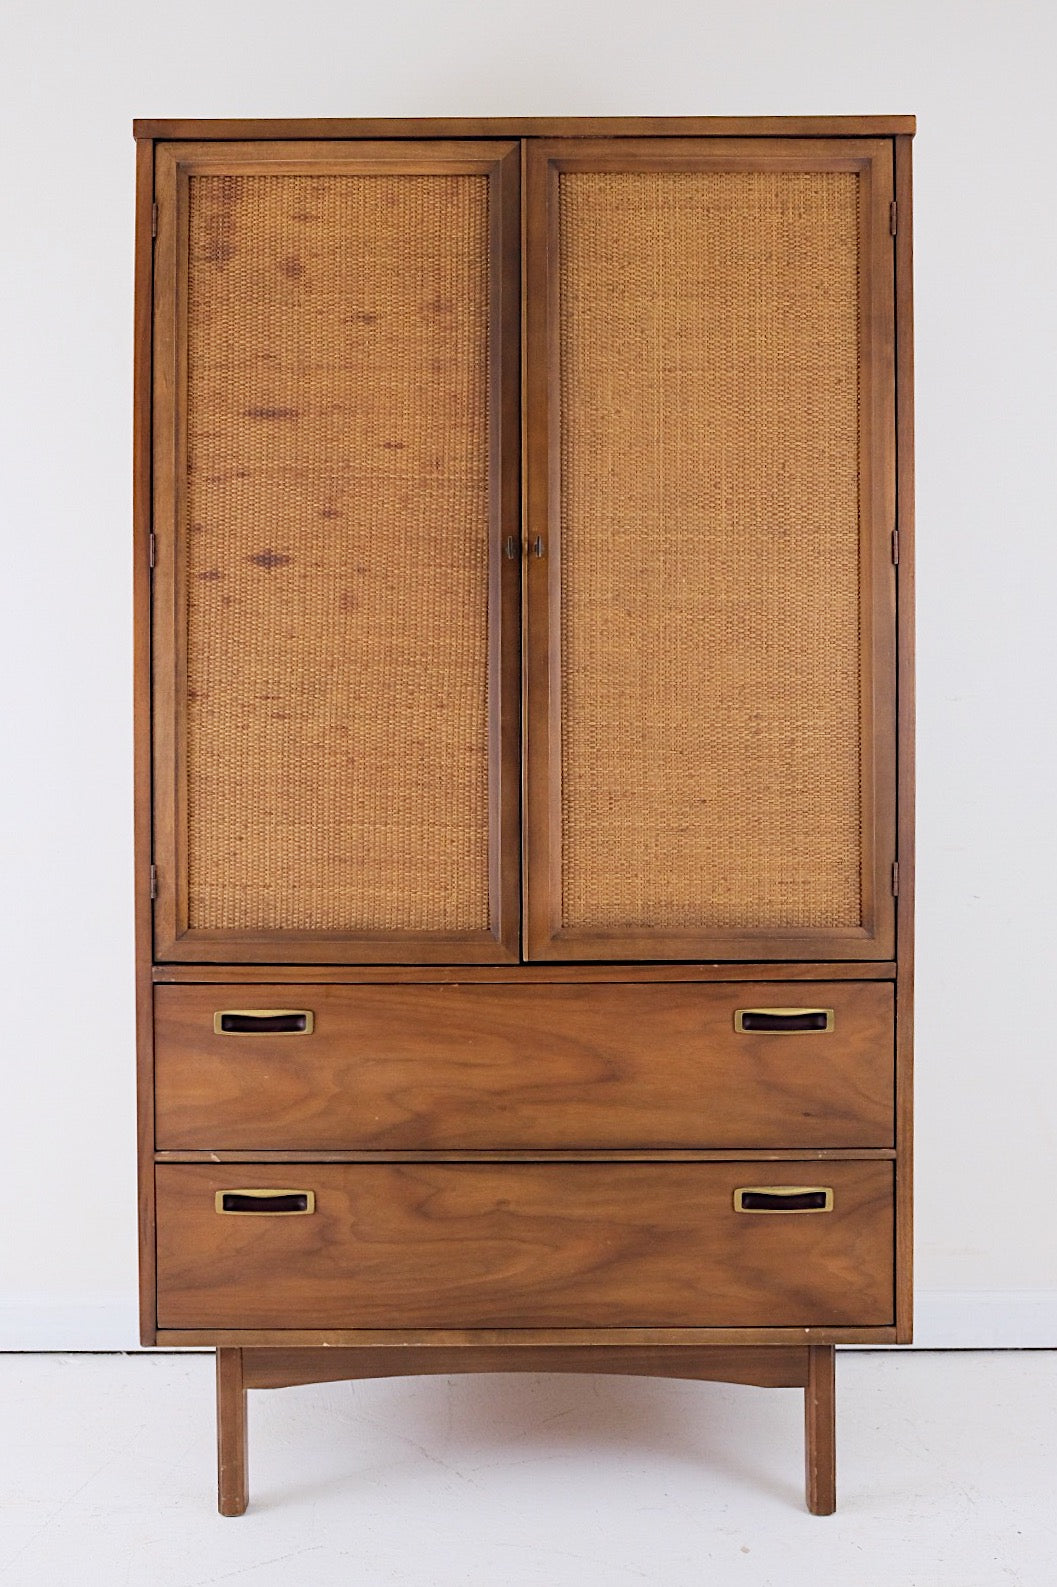 Cane Rattan Brass Wardrobe Style Of Jack Cartwright for Founders